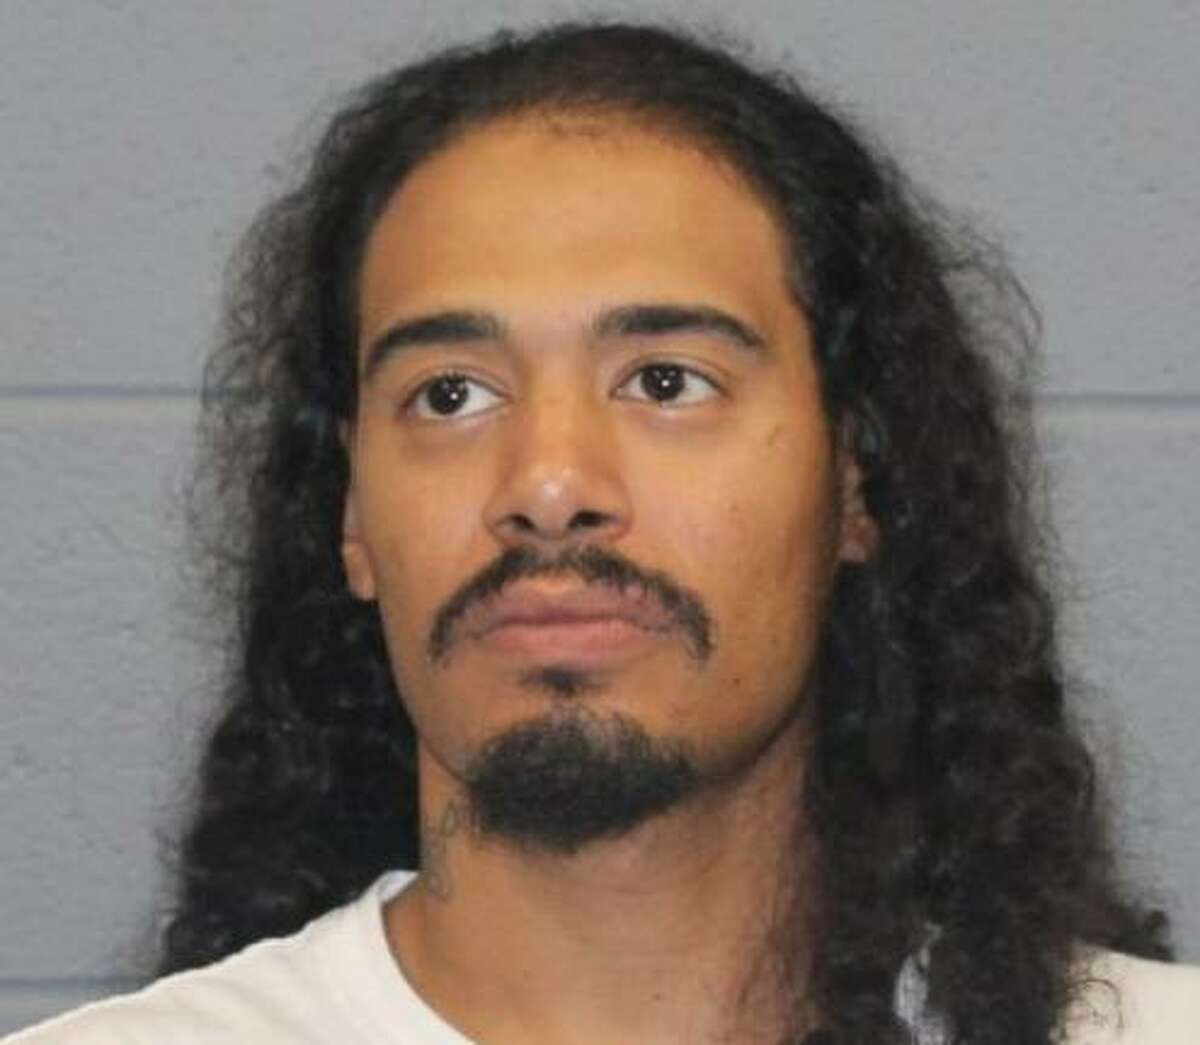 Rocky Alvarado, 27, was taken into custody in Waterbury, Conn., on Wednesday, June 30, 2021, by the Street Crime Unit on charges of first-degree assault, third-degree assault and disorderly conduct in connection with the June 26 stabbing of a 34-year-old woman on Willow Street, police said.